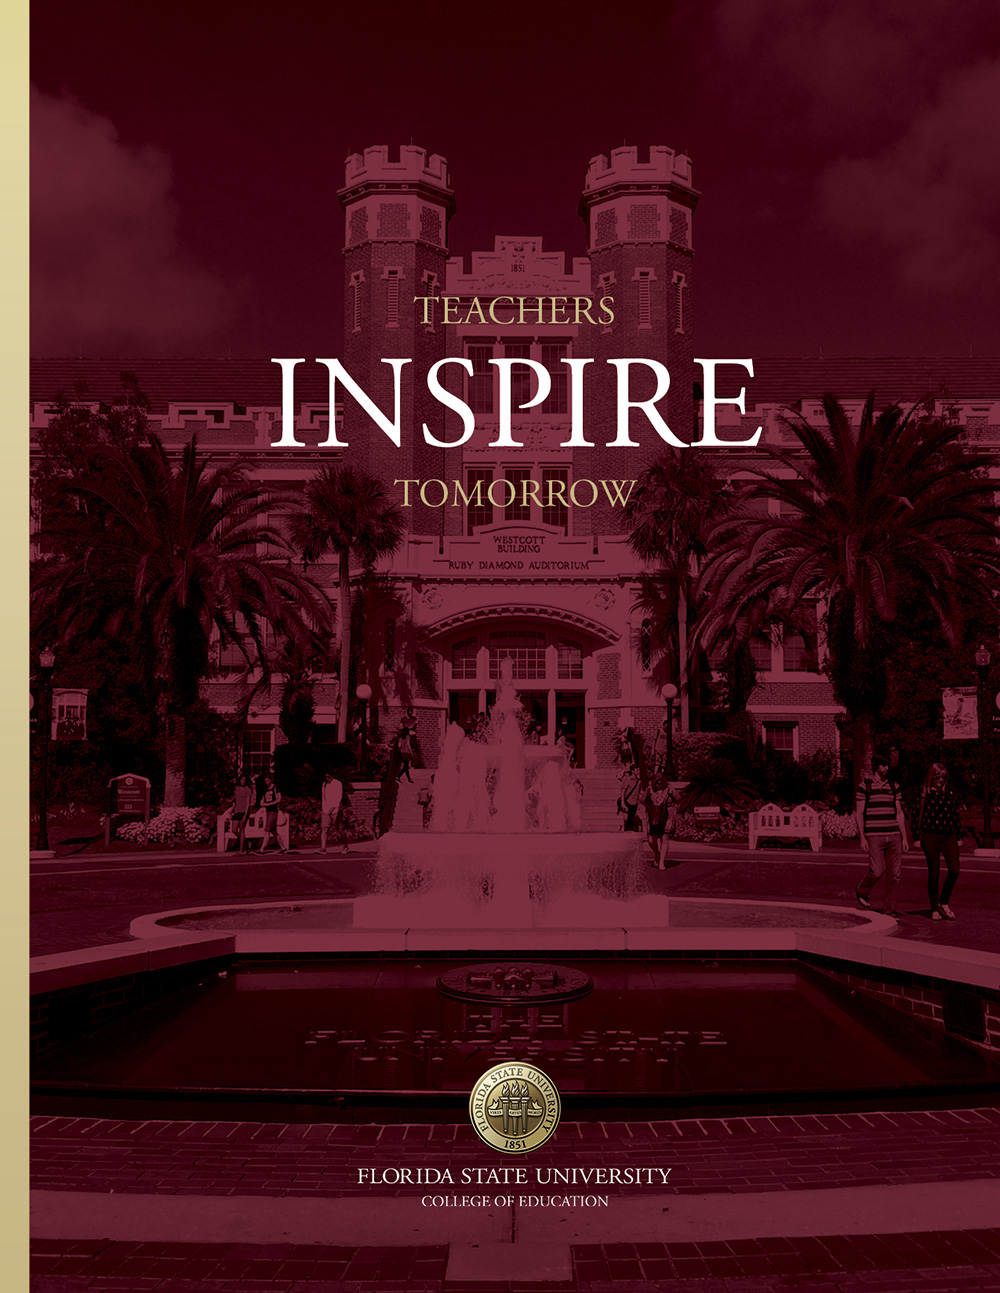 FSU-ViewBook-Cover-Concept-Inspire-A.jpg